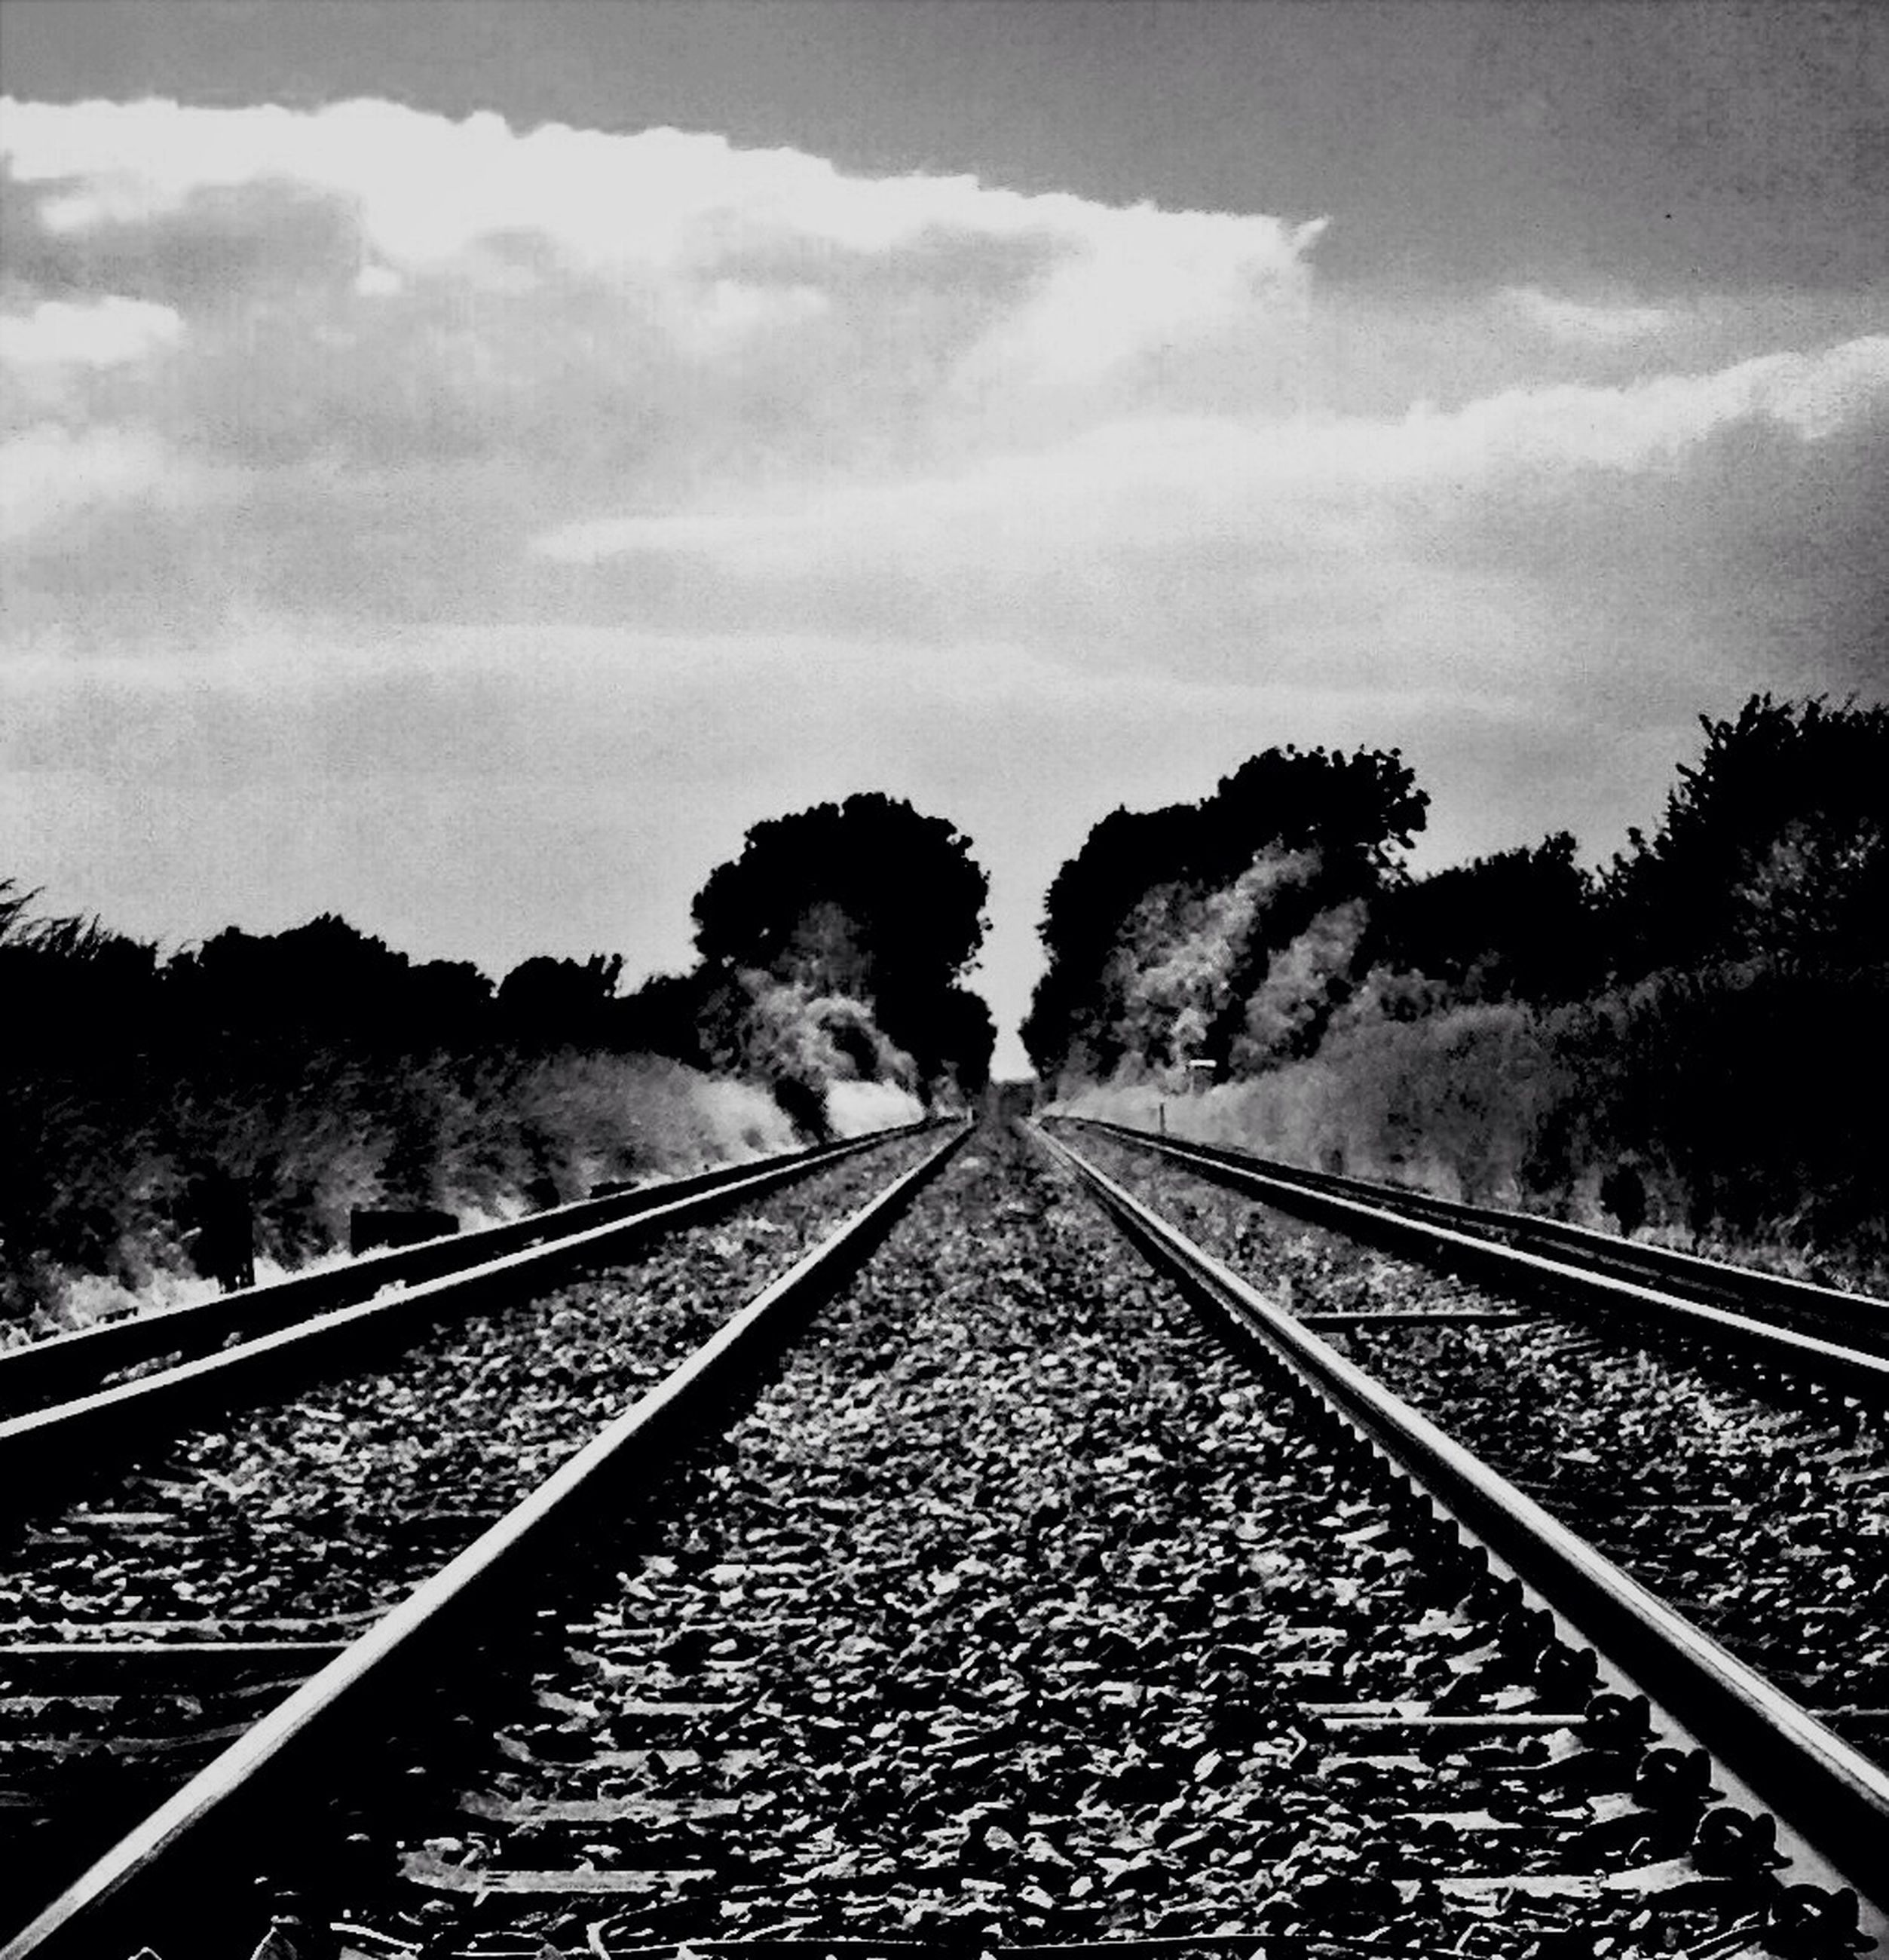 railroad track, rail transportation, transportation, diminishing perspective, the way forward, sky, vanishing point, tree, railway track, public transportation, cloud - sky, straight, day, metal, connection, outdoors, cloud, nature, no people, tranquility